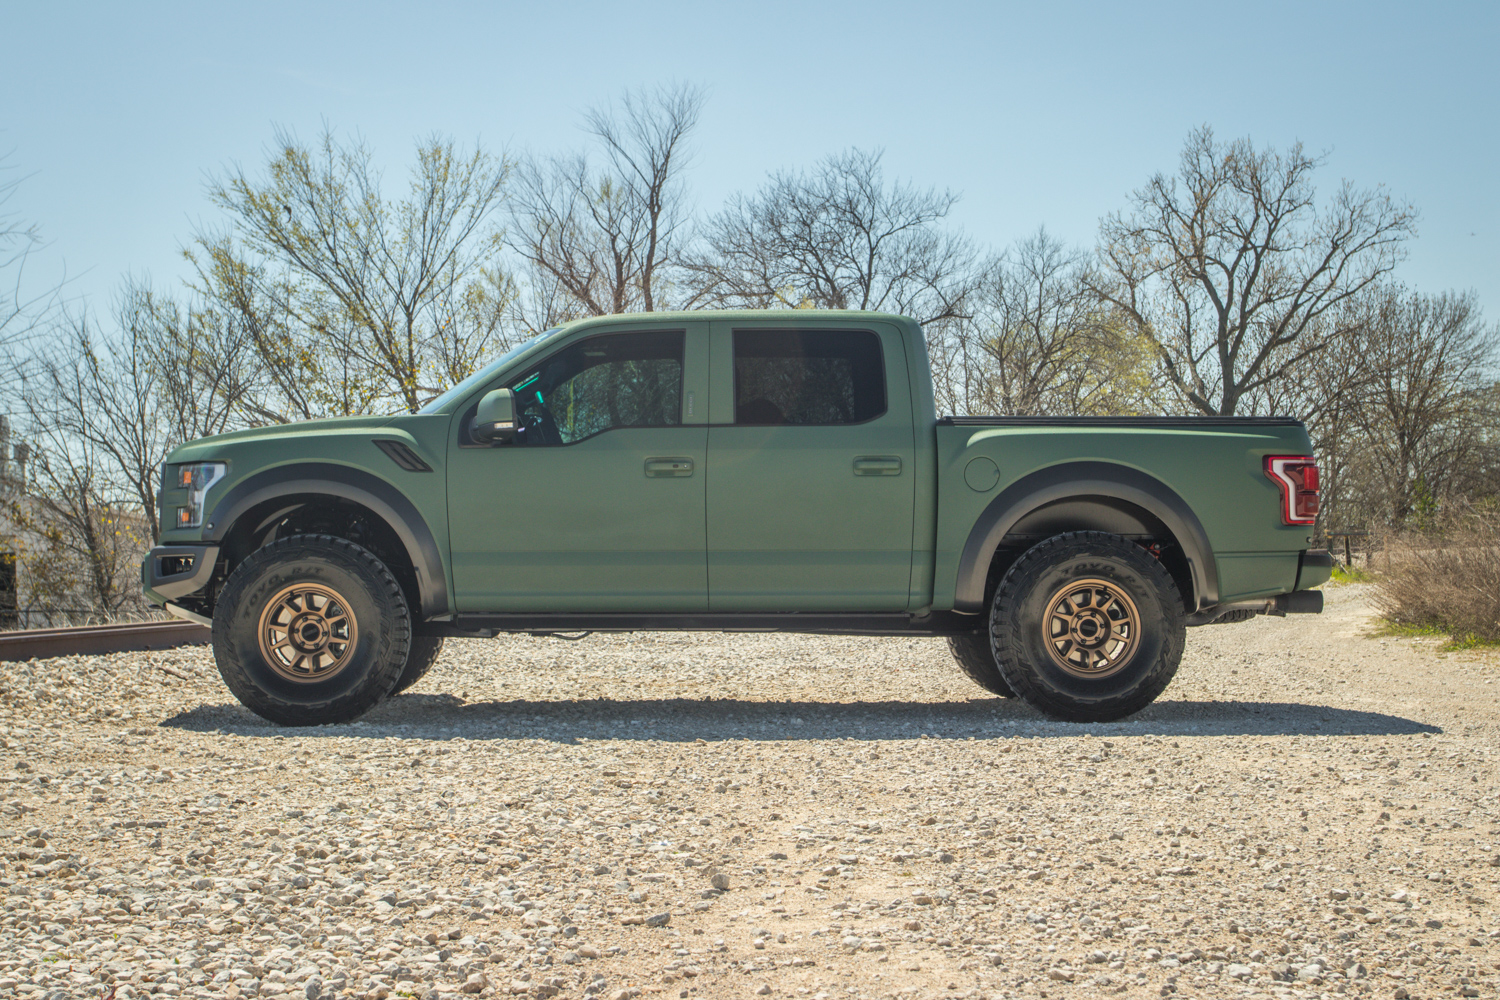 Ford Raptor Lease >> 2019 Ford F-150 Raptor with Green Kevlar Coating and Gold Method Race Wheels